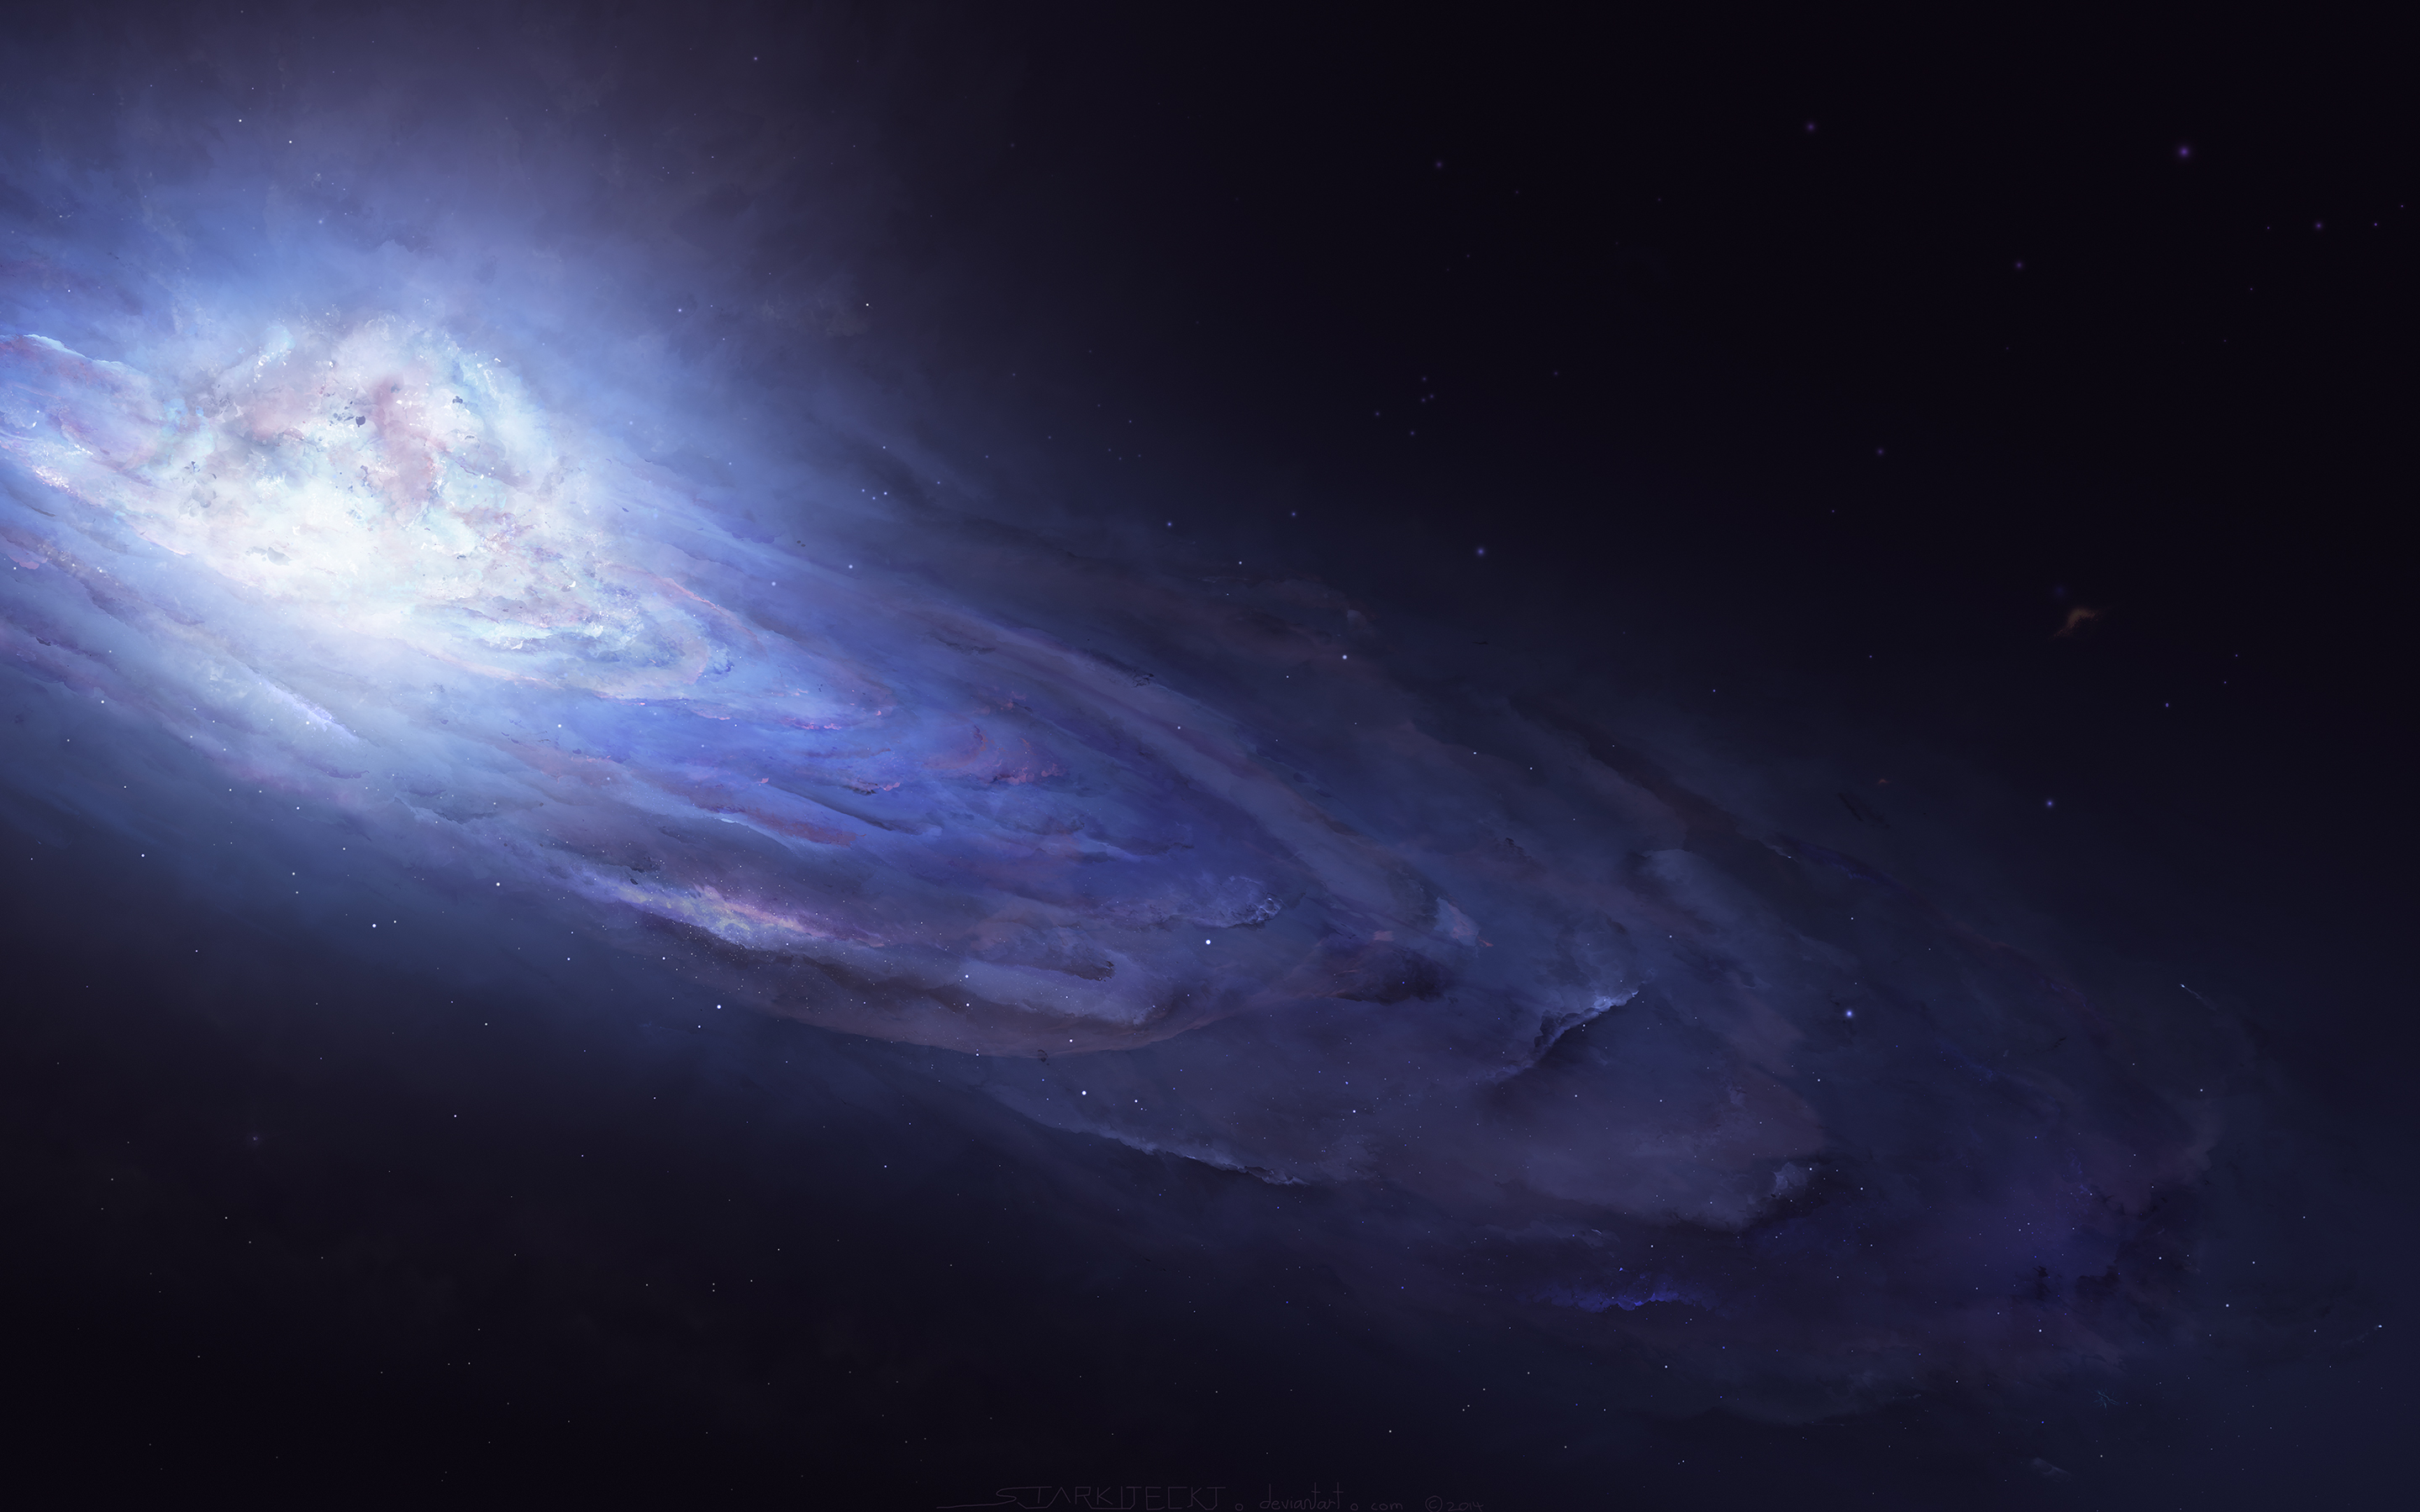 Andromeda Galaxy1342217915 - Andromeda Galaxy - Power, Galaxy, Andromeda